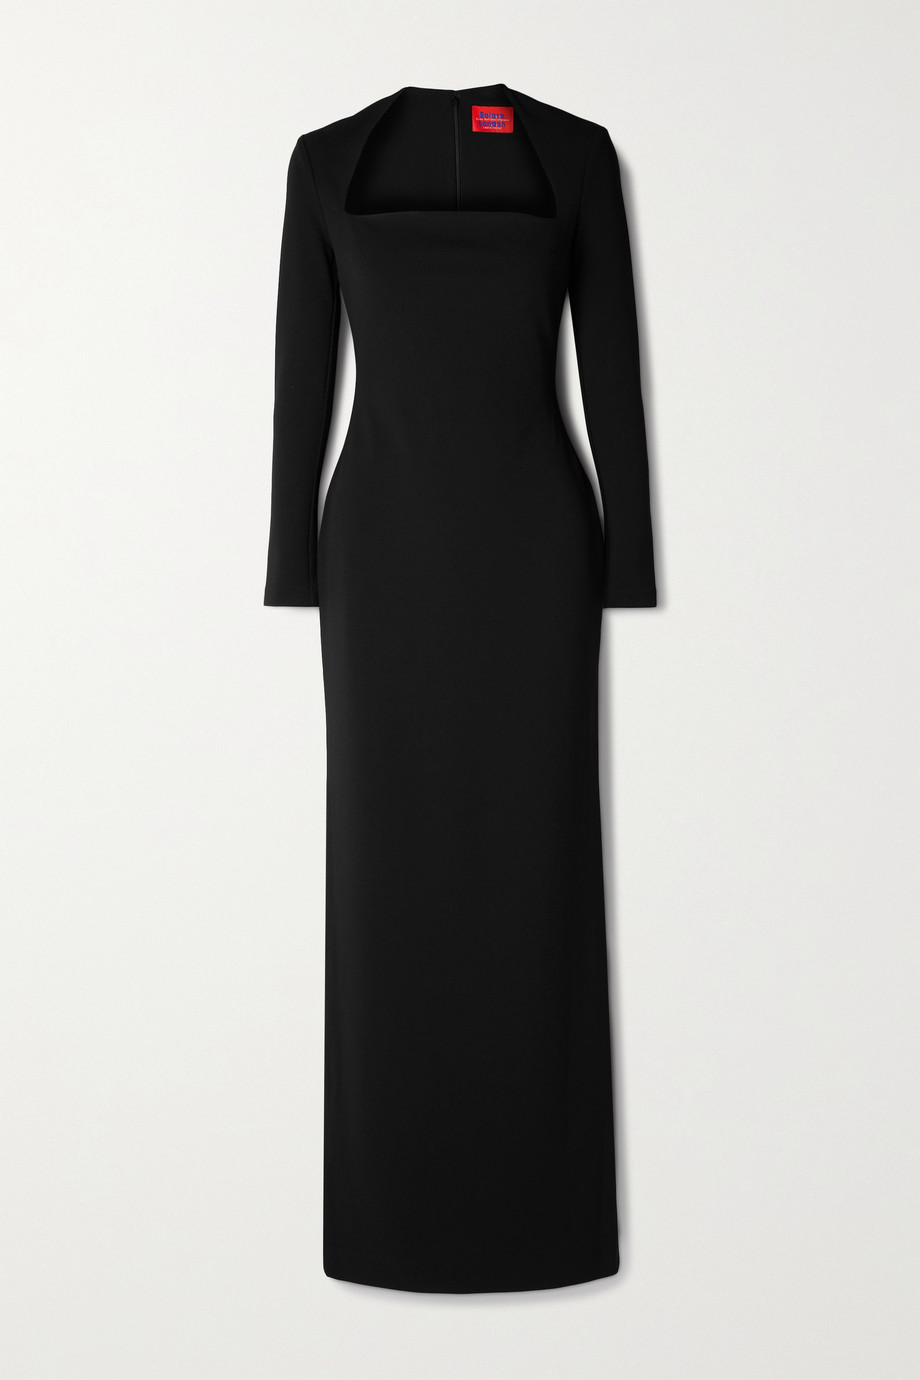 Solace London Clio cady maxi dress